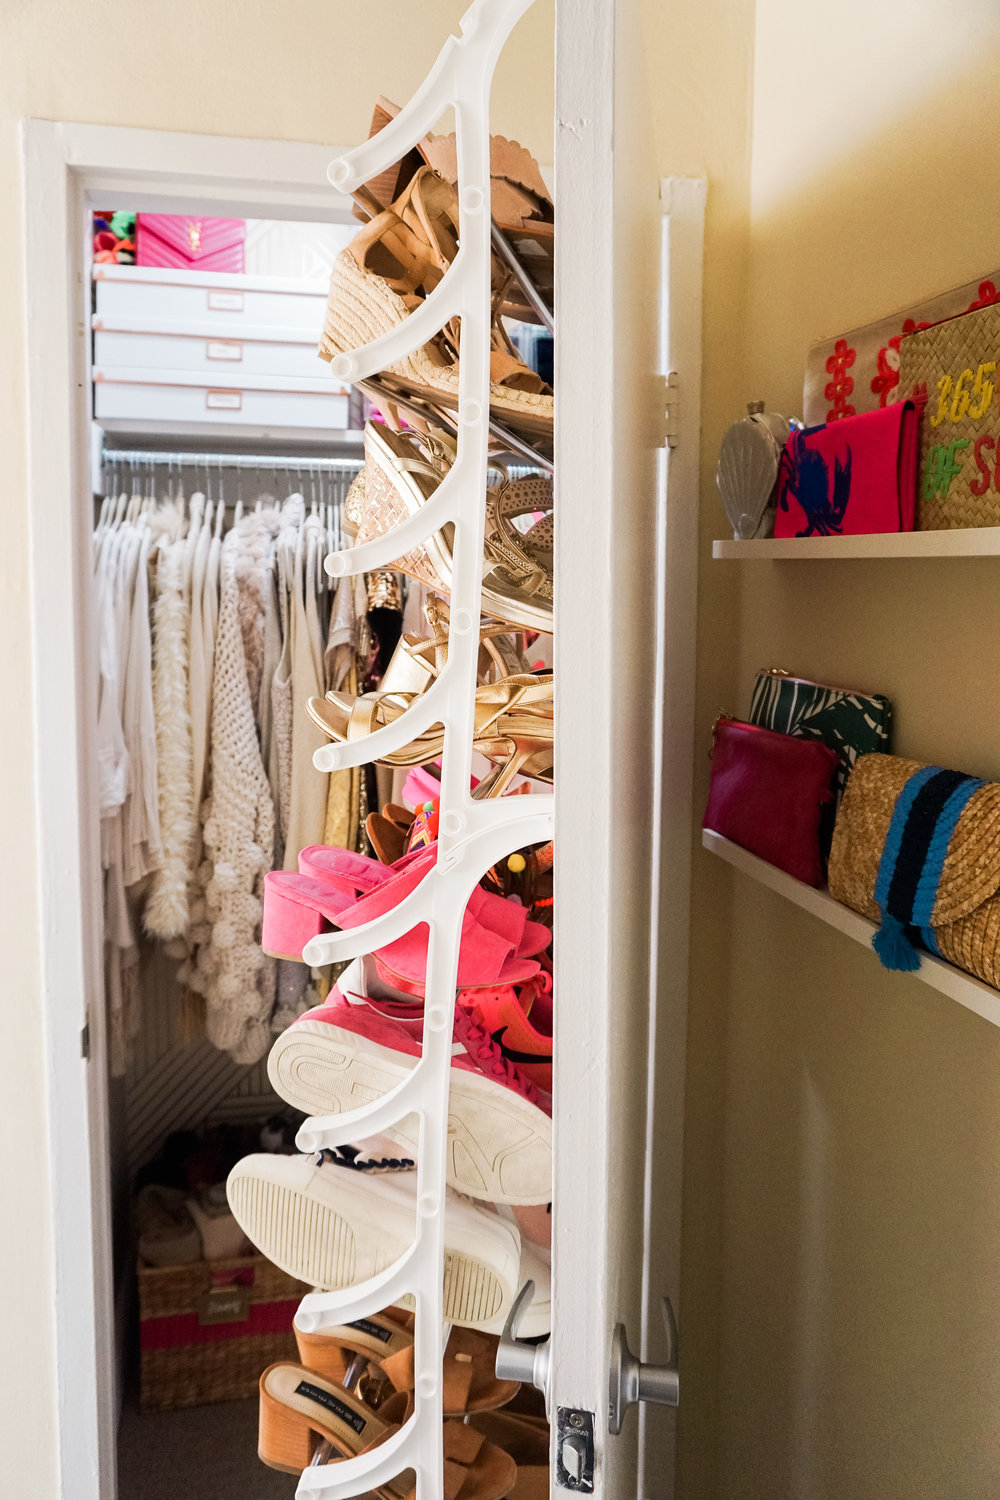 House of Turk | Closet Organization, Command Shelves